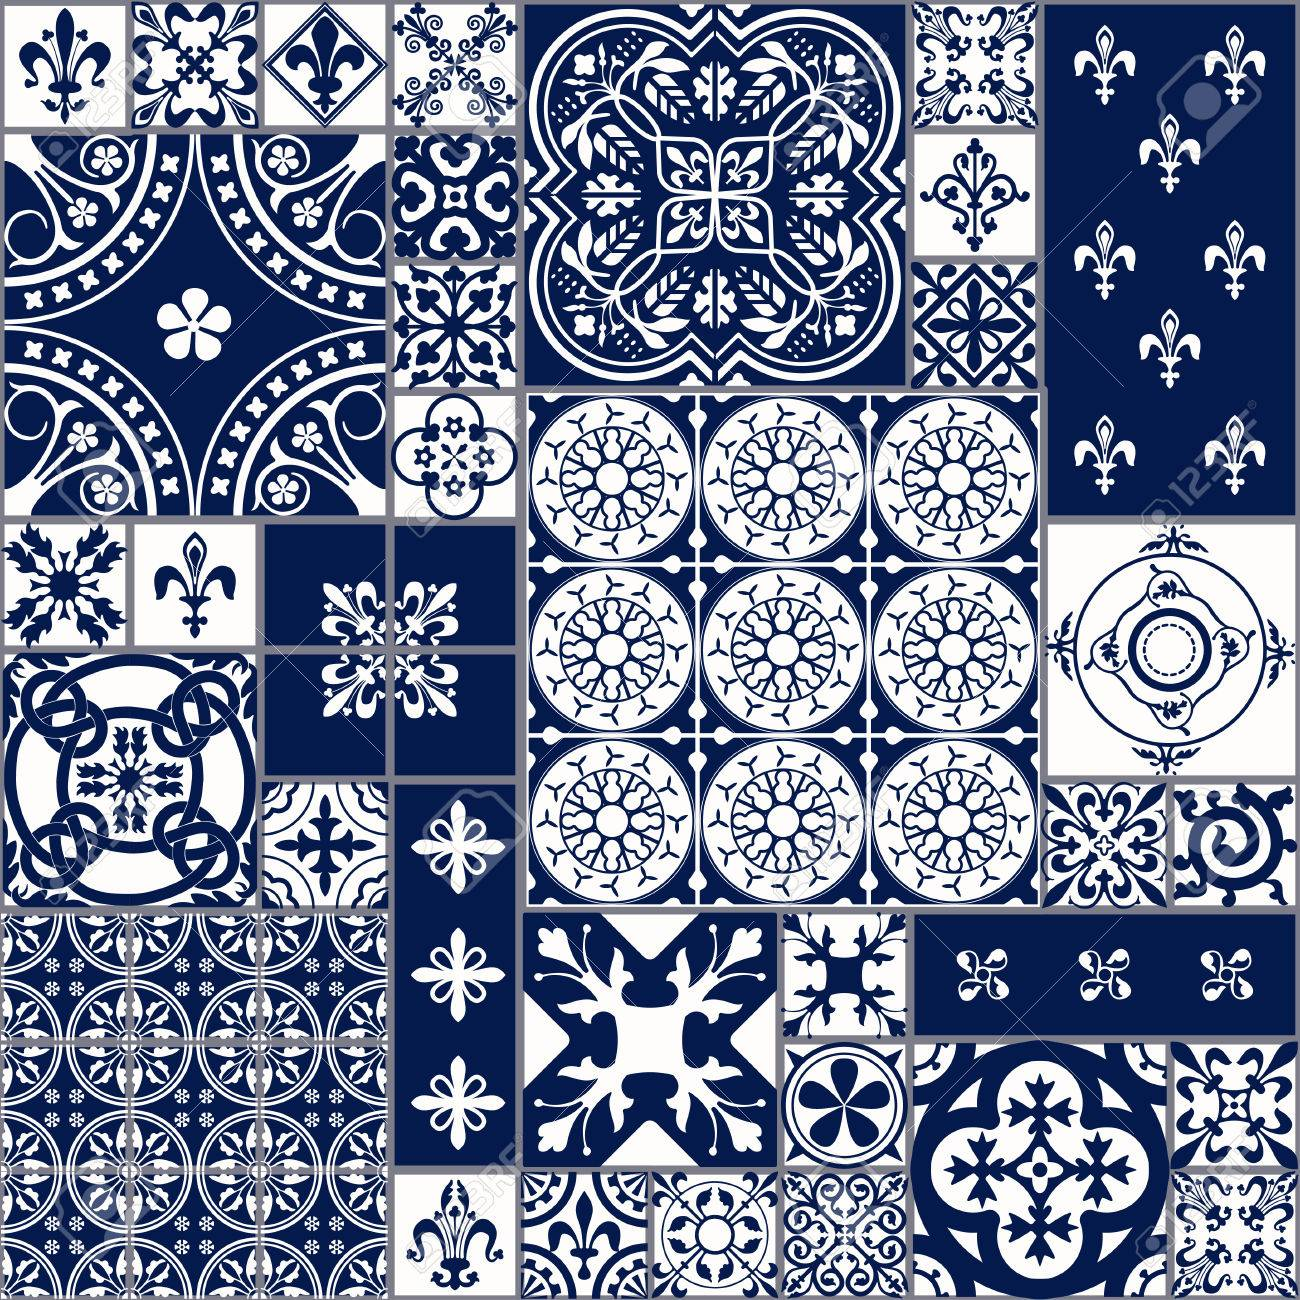 Vector Illustration of Moroccan tiles Seamless Pattern for Design, Website, Background, Banner. Spanish element for Wallpaper, Ceramic or Textile. Middle Ages Ornament Texture Template. White and Blue - 54830532